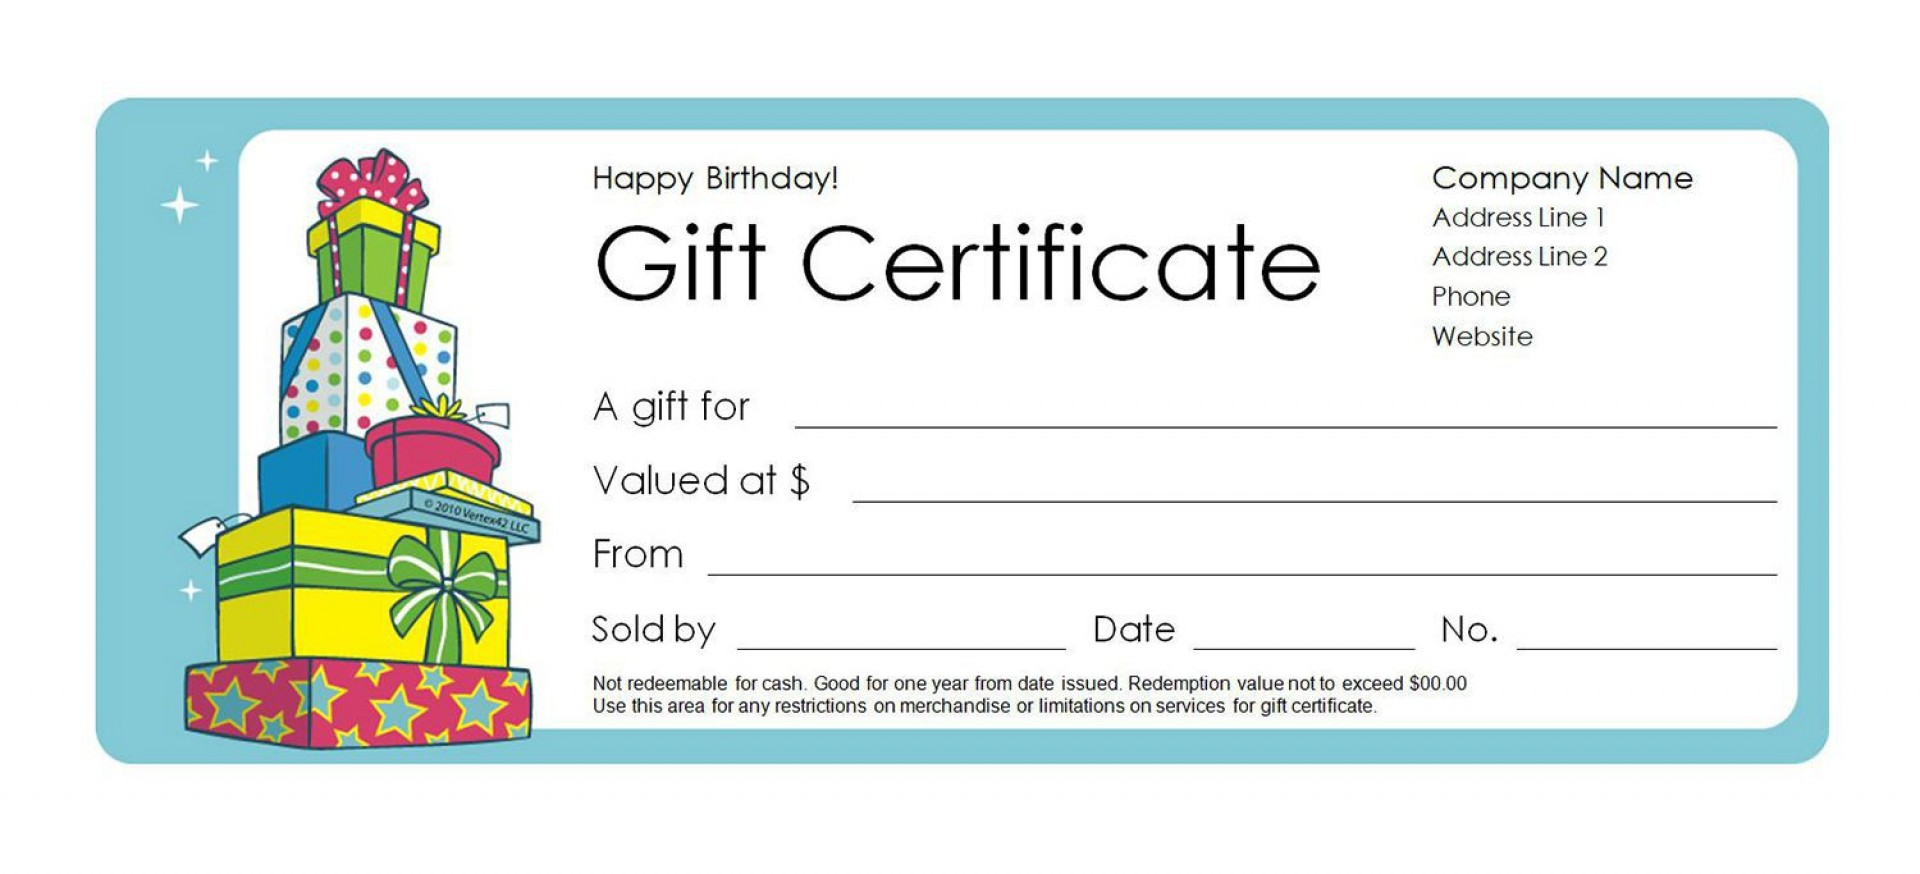 007 Fascinating Free Printable Template For Gift Certificate Photo  Voucher1920